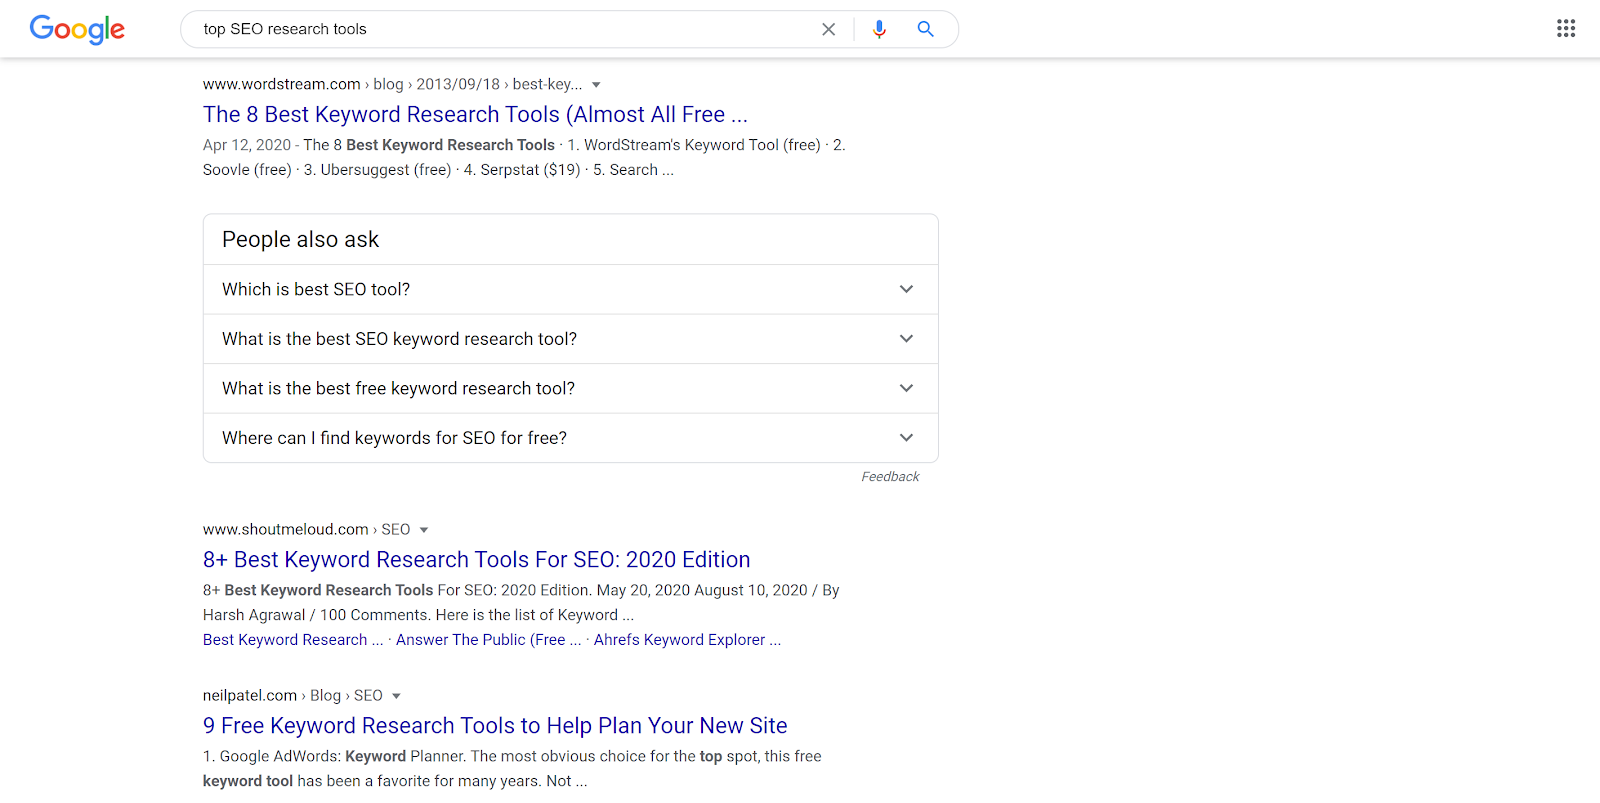 Top SEO research tools